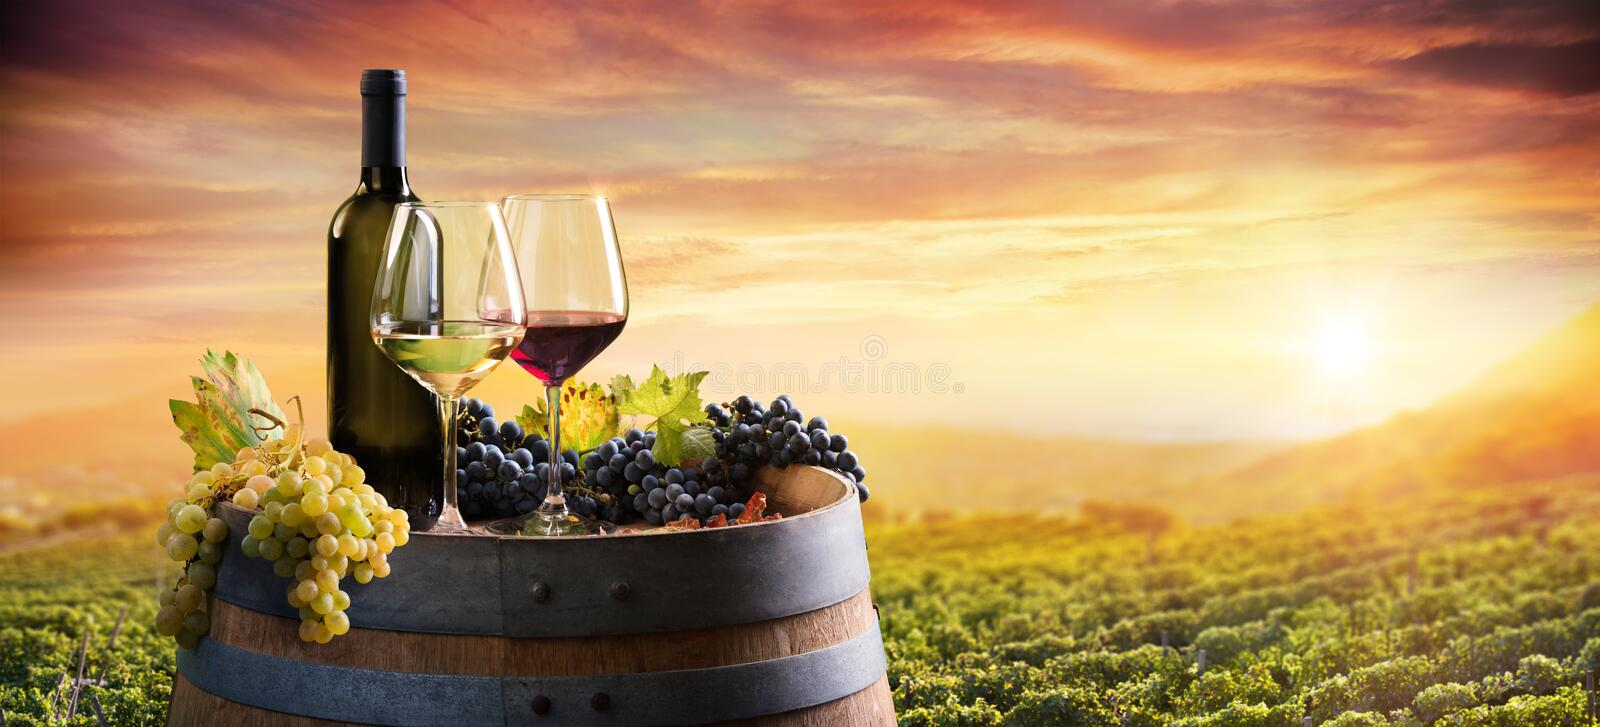 Bottle And WineGlasses On Barrel In Vineyard royalty free stock images